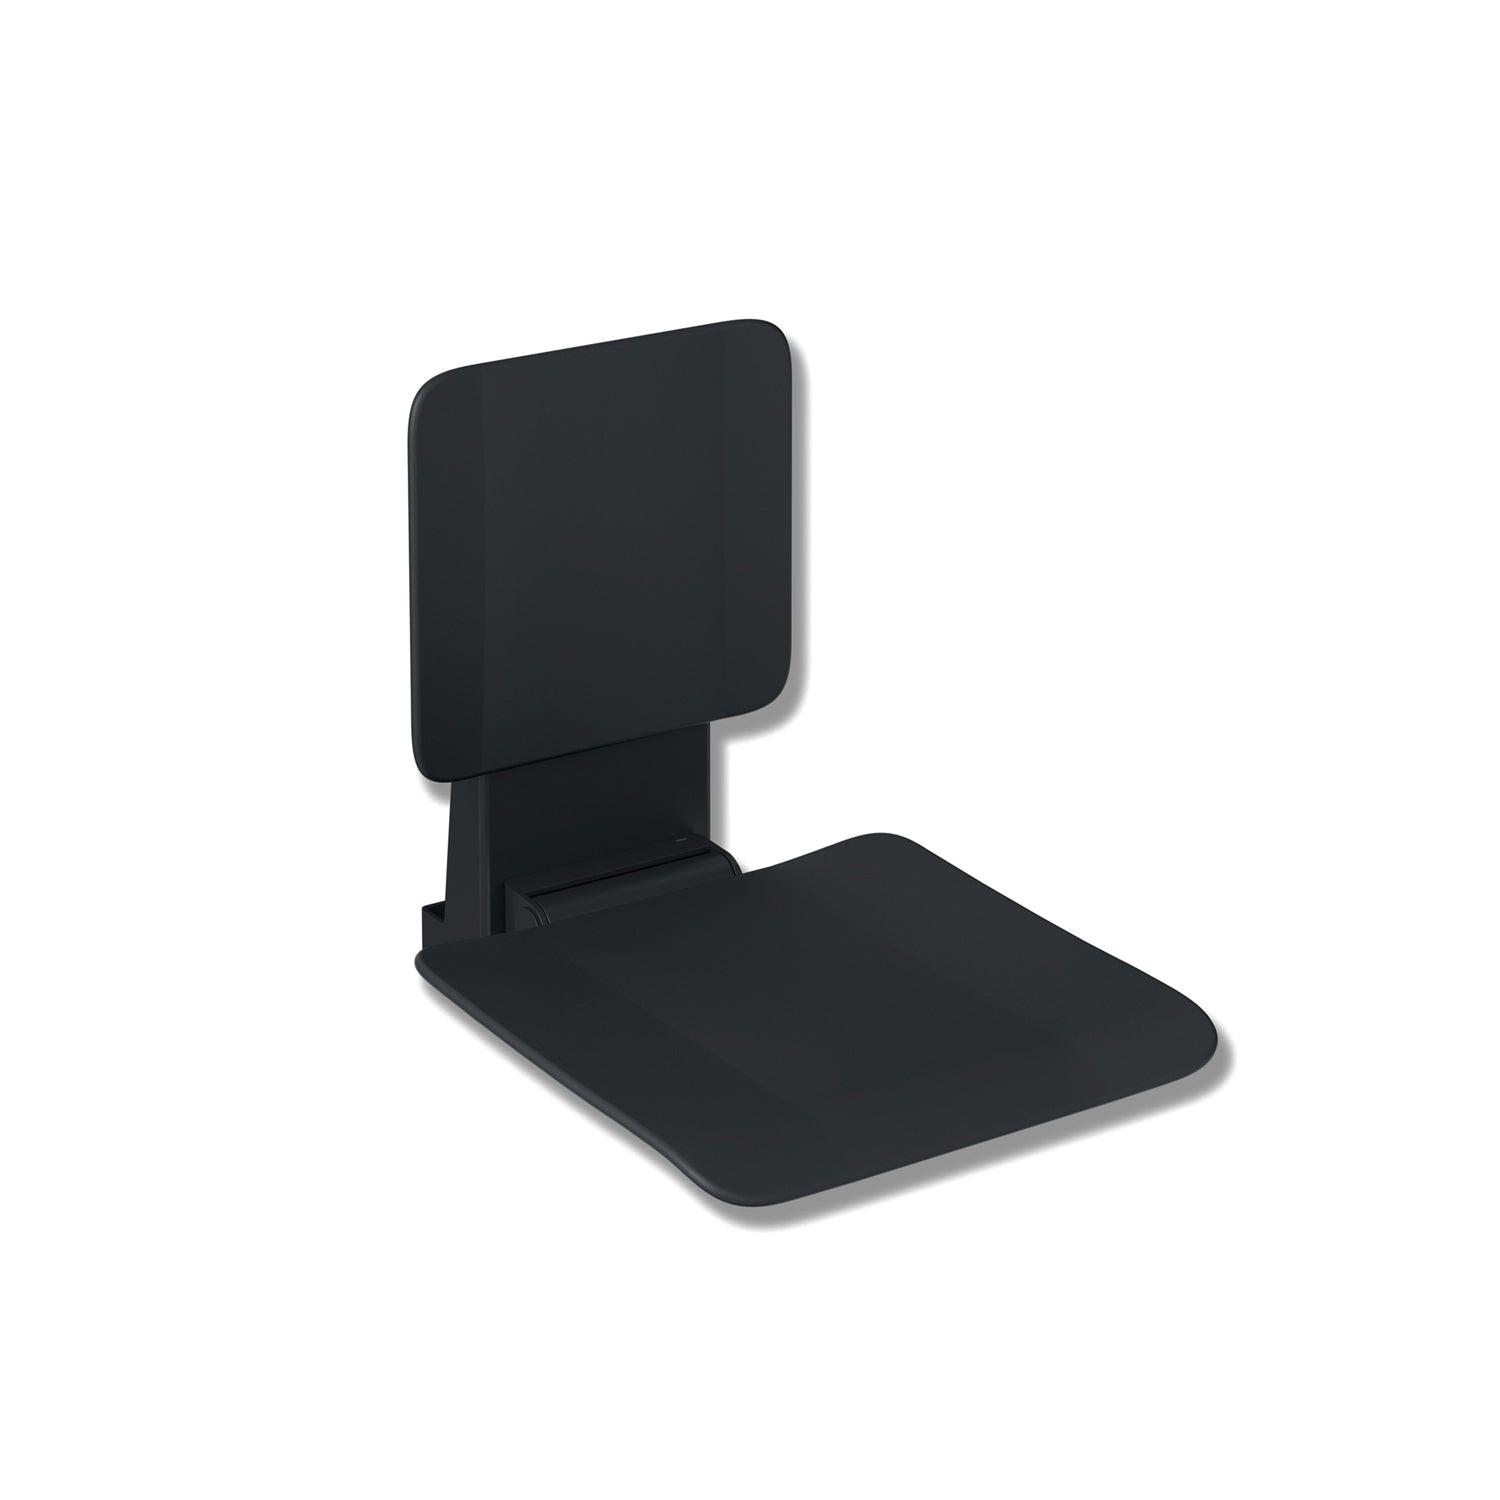 650mm Freestyle Hanging Seat with a backrest and a black finish on a white background